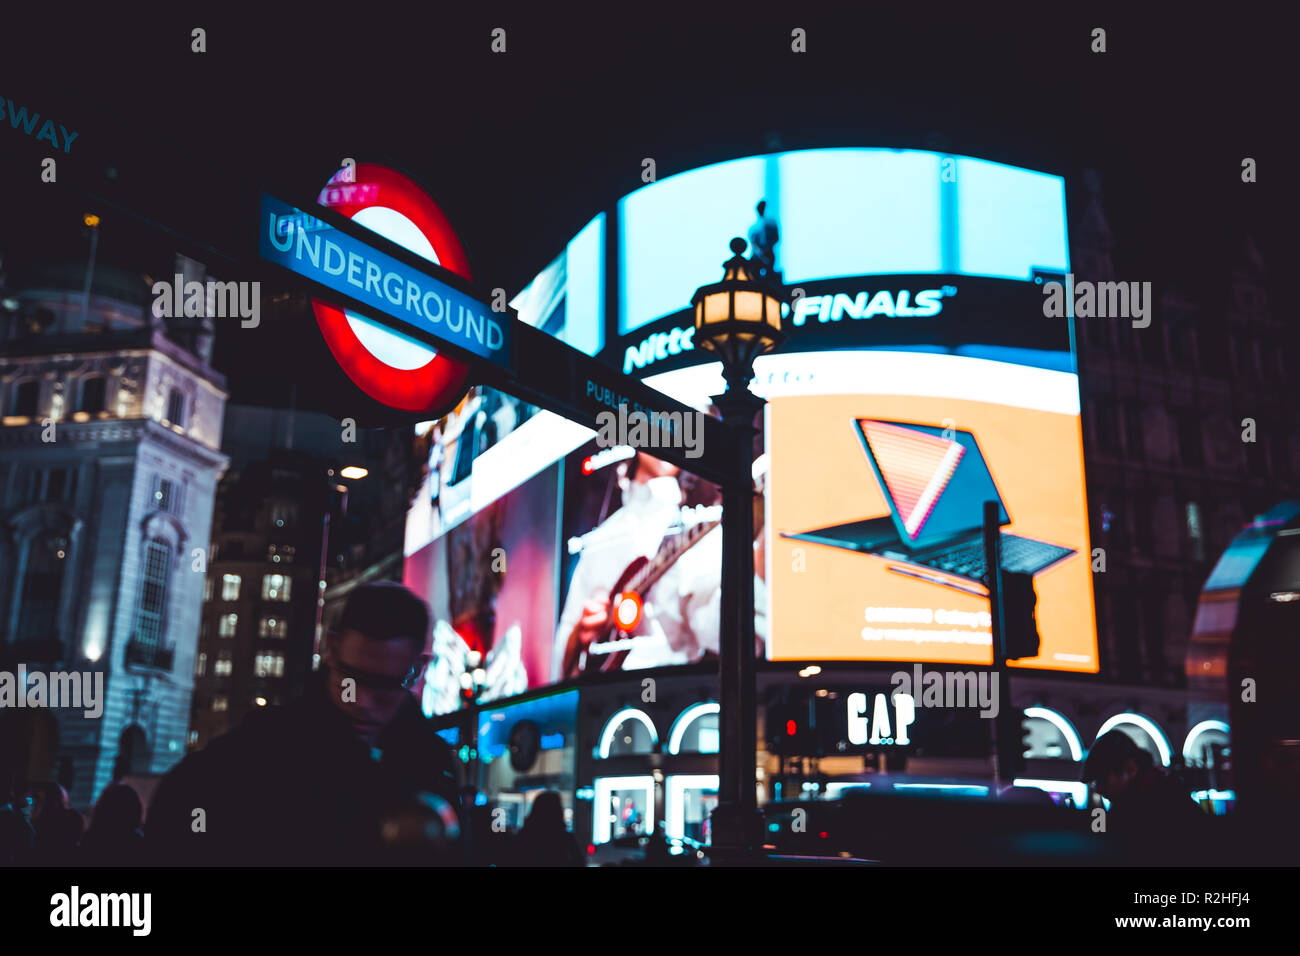 LONDON - NOVEMBER 14, 2018: Piccadilly Circus at night in London - Stock Image